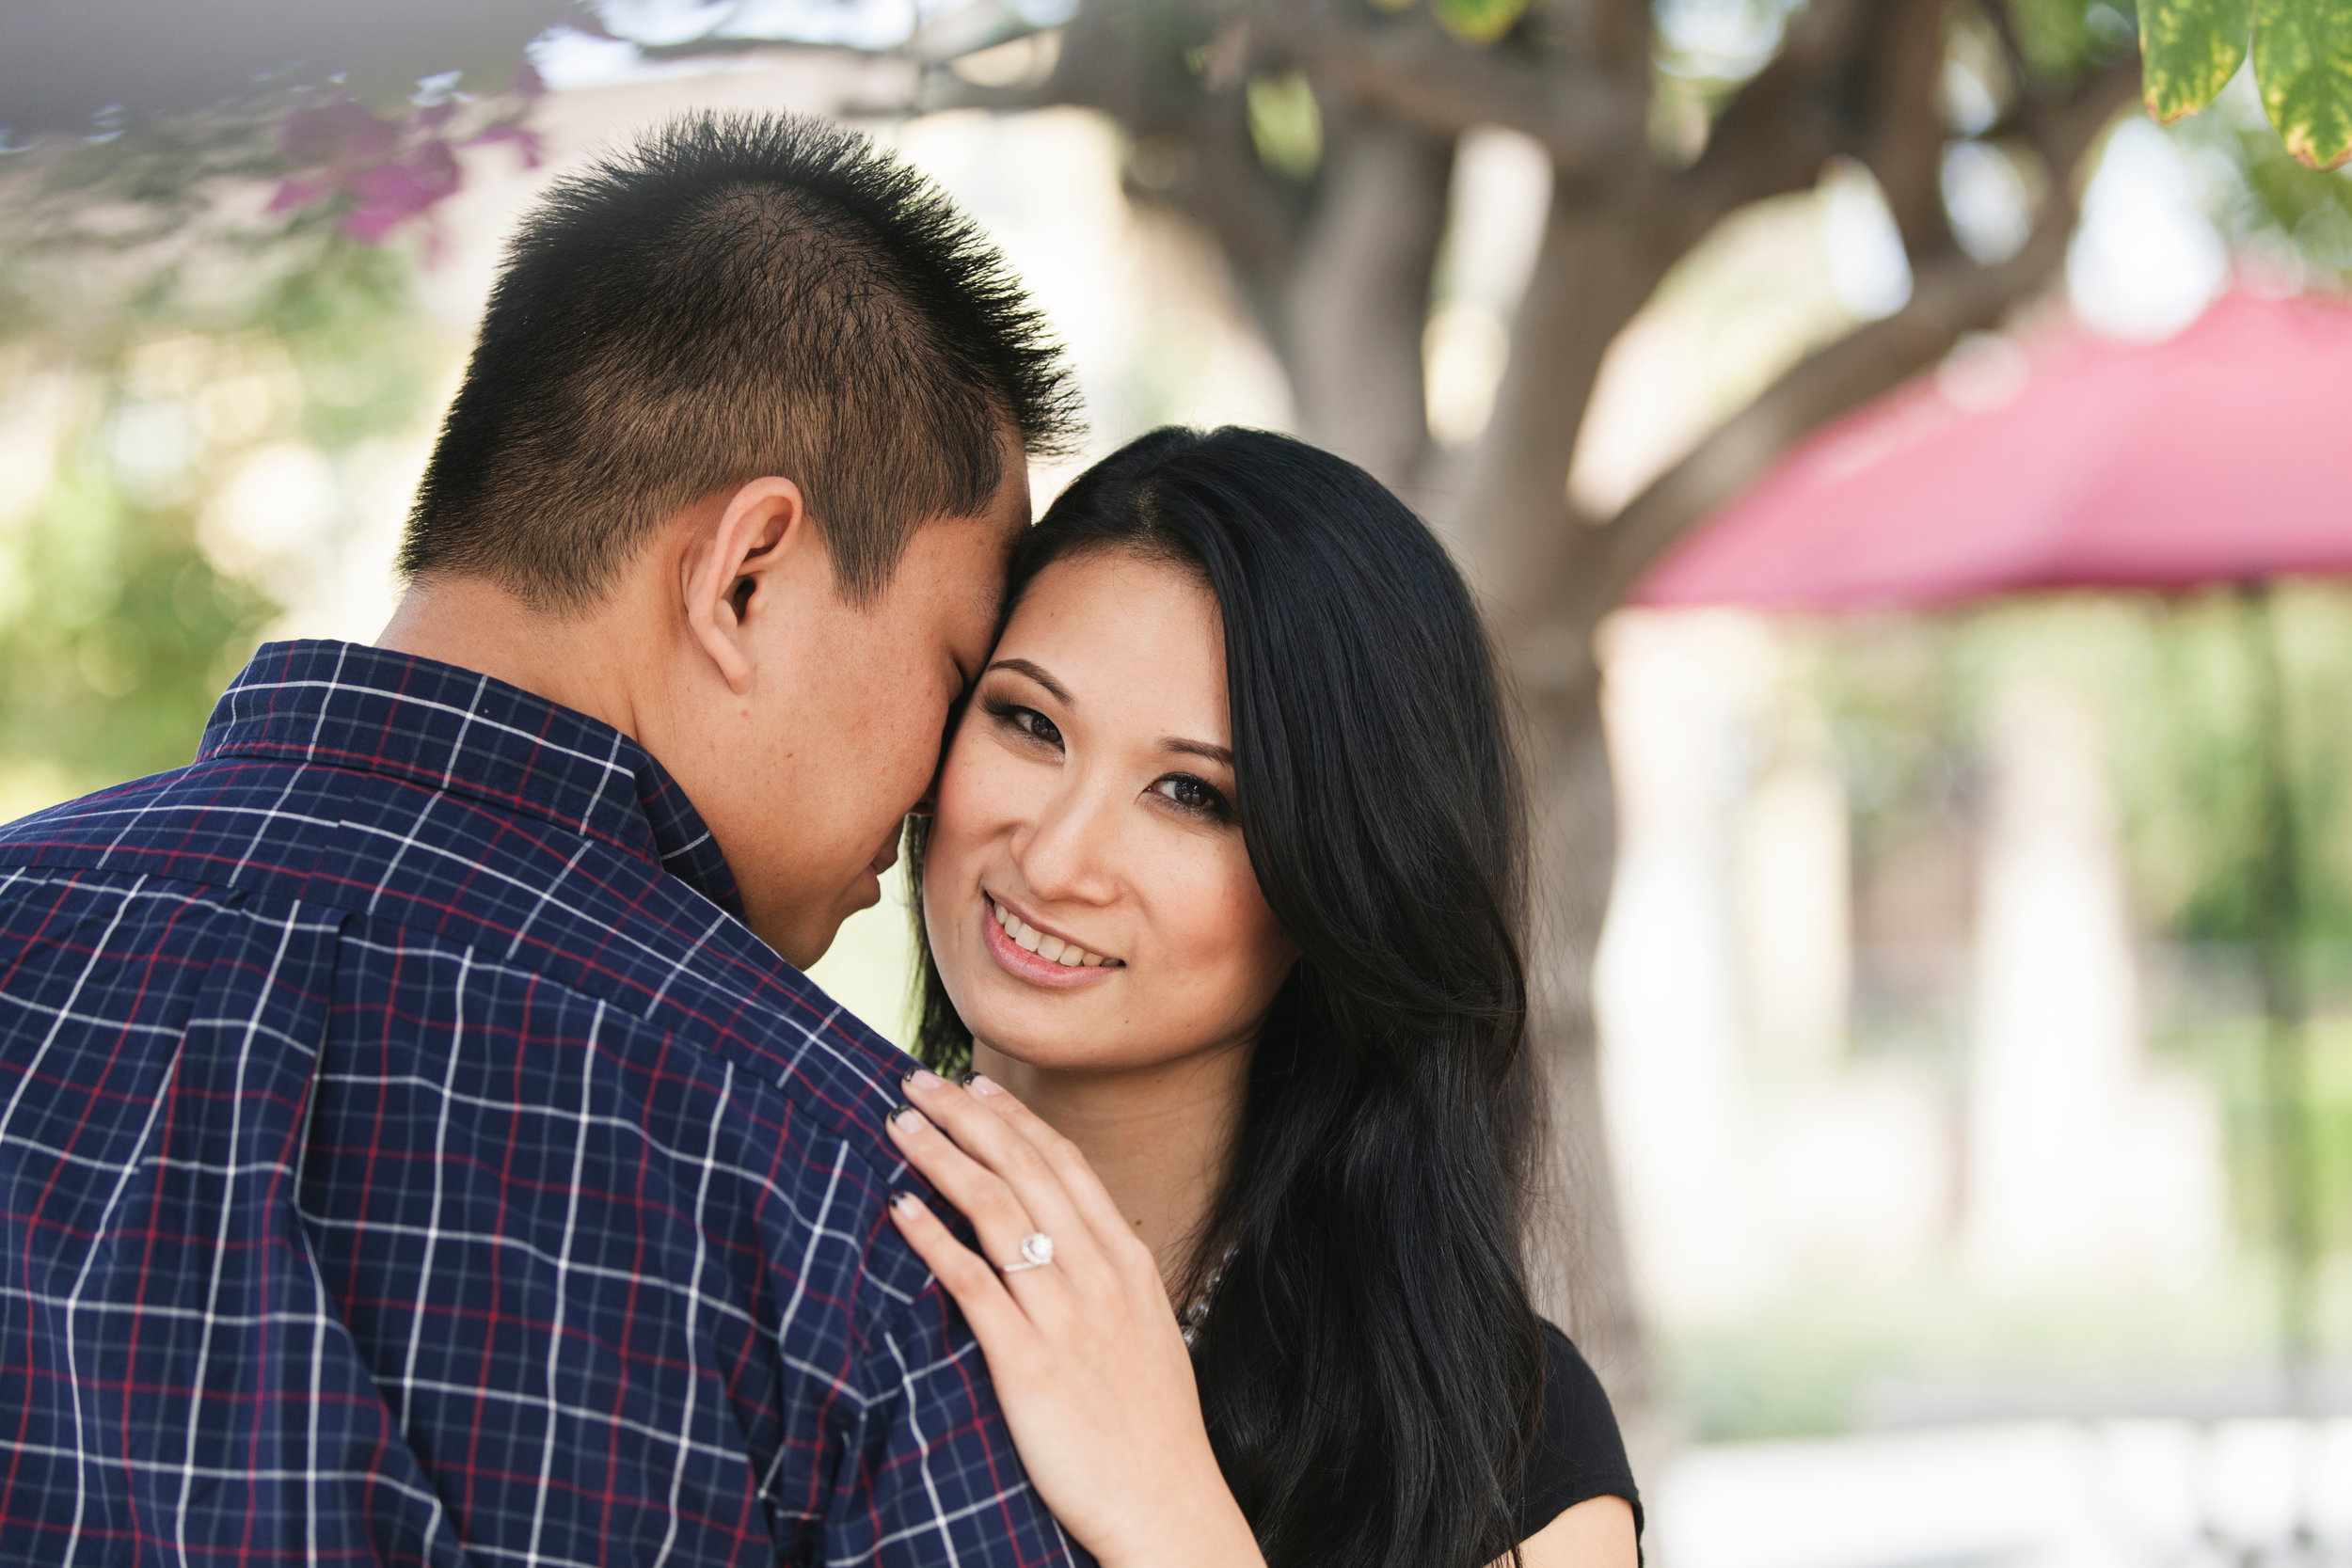 Griffith Observatory Engagement Photos Nicole and Vien-8173.jpg